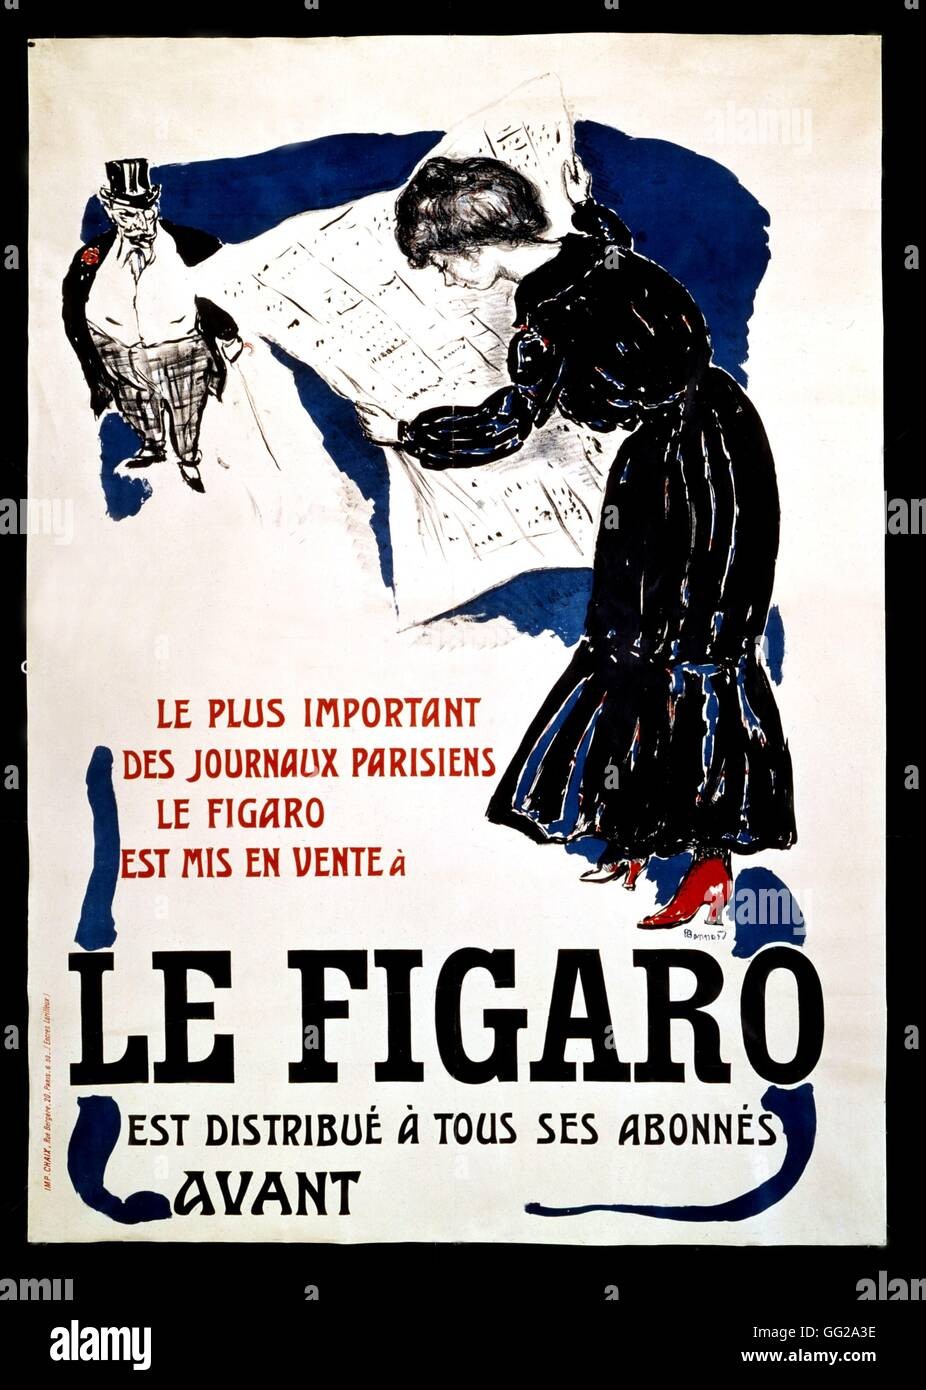 Pierre Bonnard (1867-1947) French school Advertising poster for 'Le Figaro' newspaper 20th century France - Stock Image